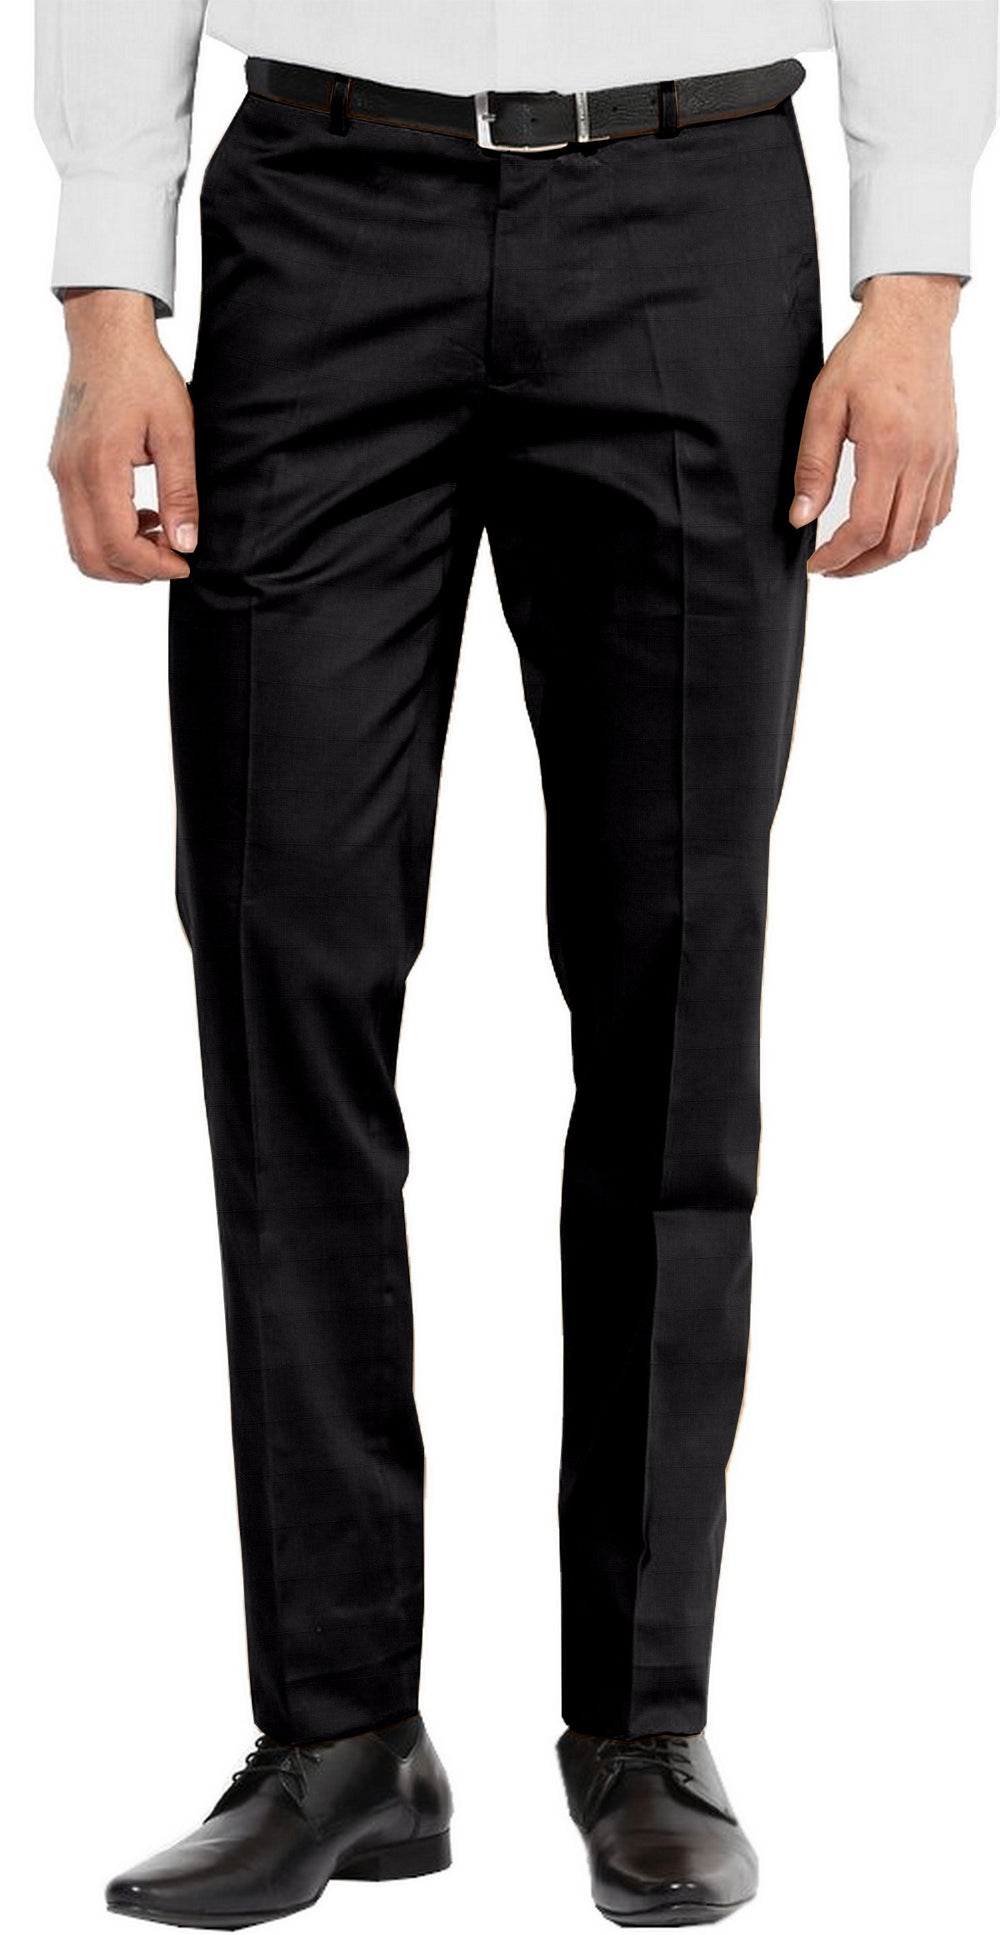 Dugdale Fine Worsted - Black Check  Pant